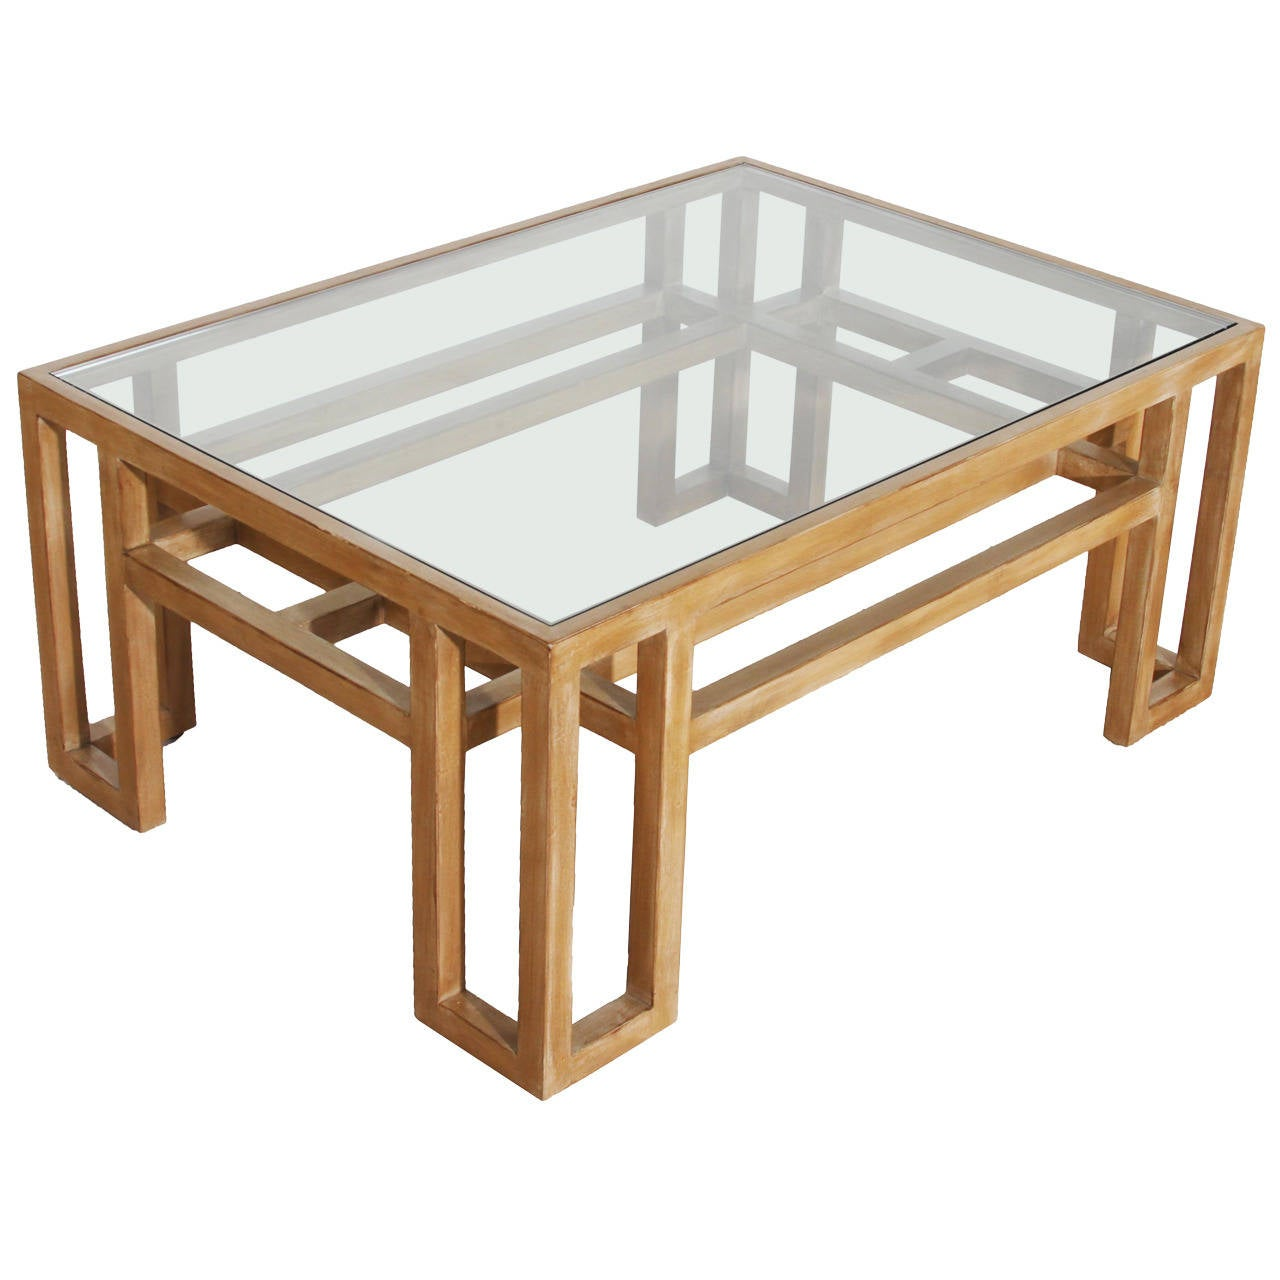 Vintage wood coffee table with glass top for sale at 1stdibs for Vintage coffee table